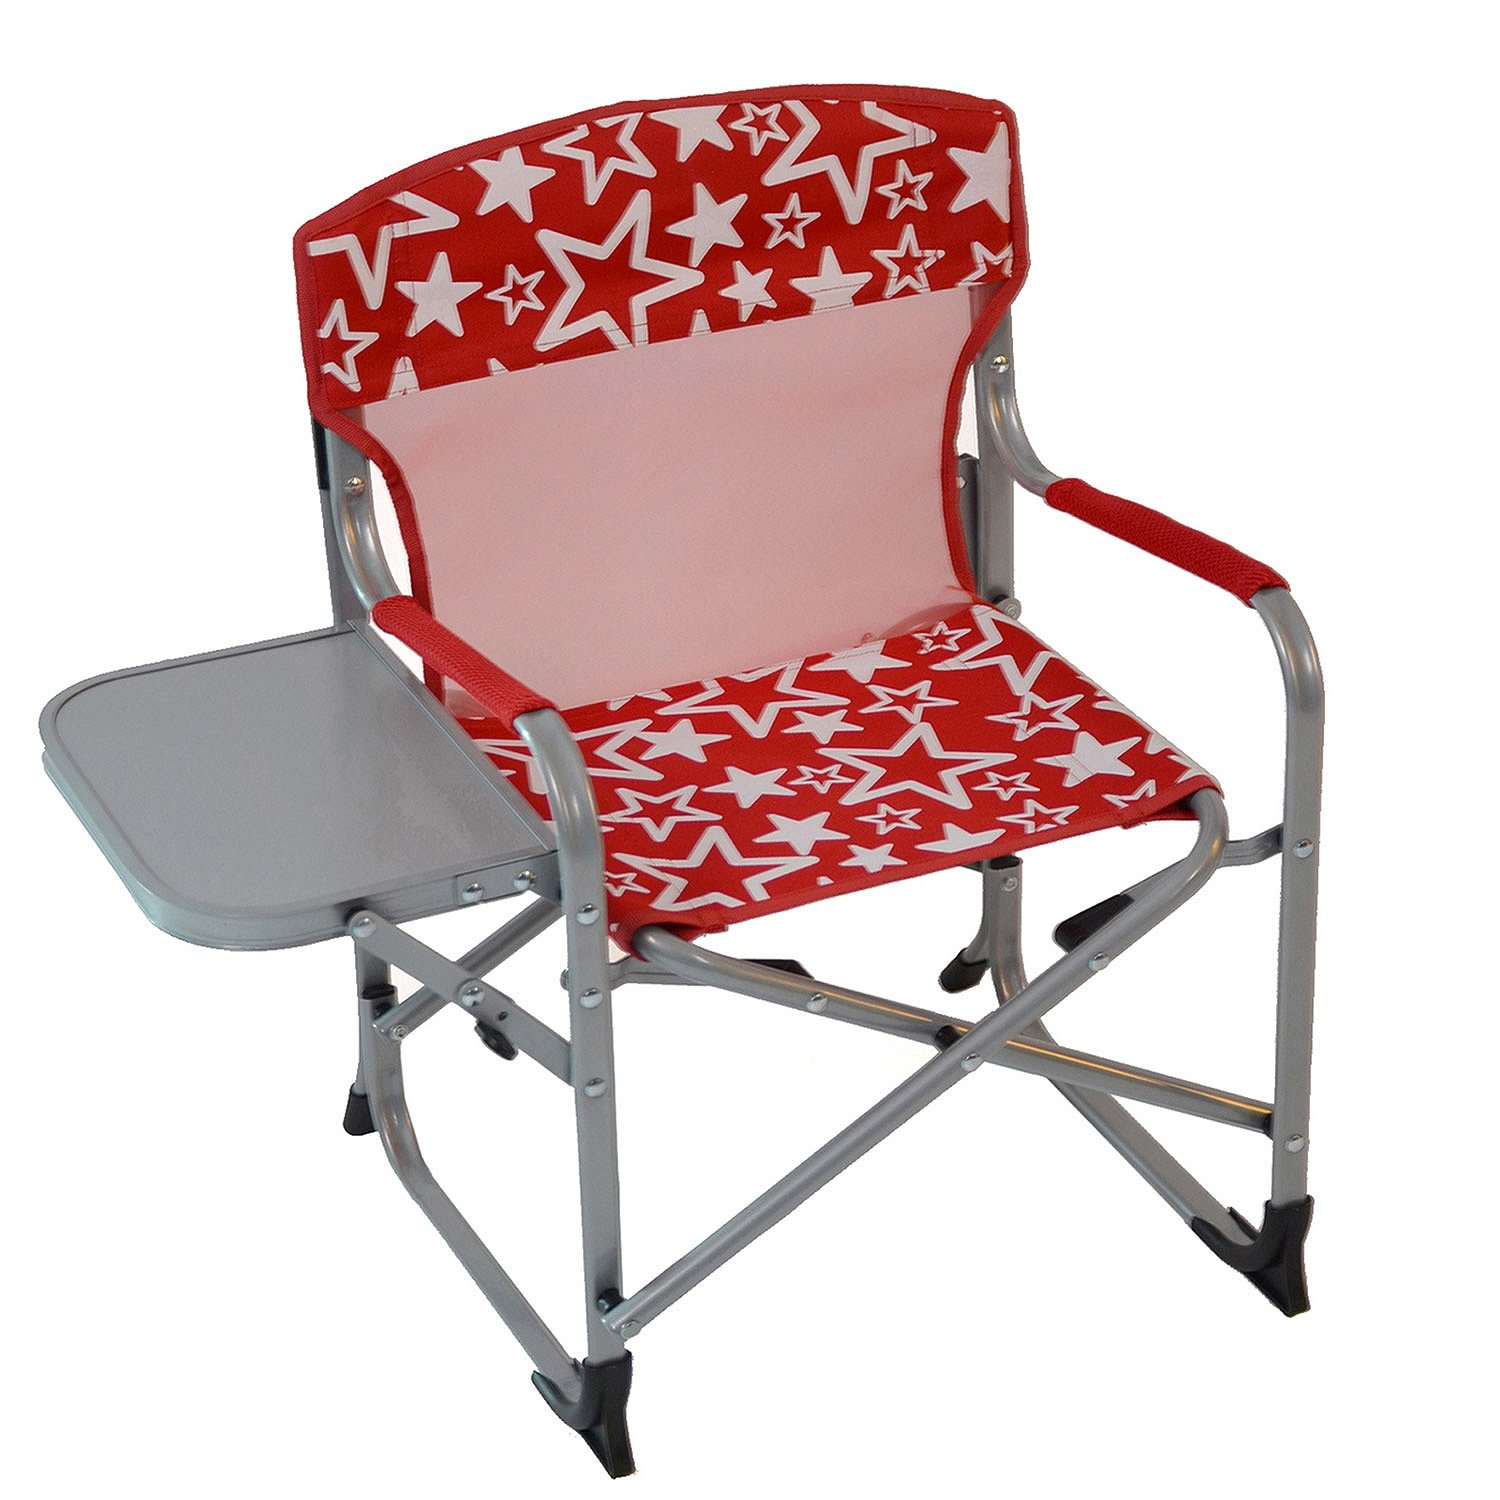 Kid's Portable Director's Chair (Red Stars)